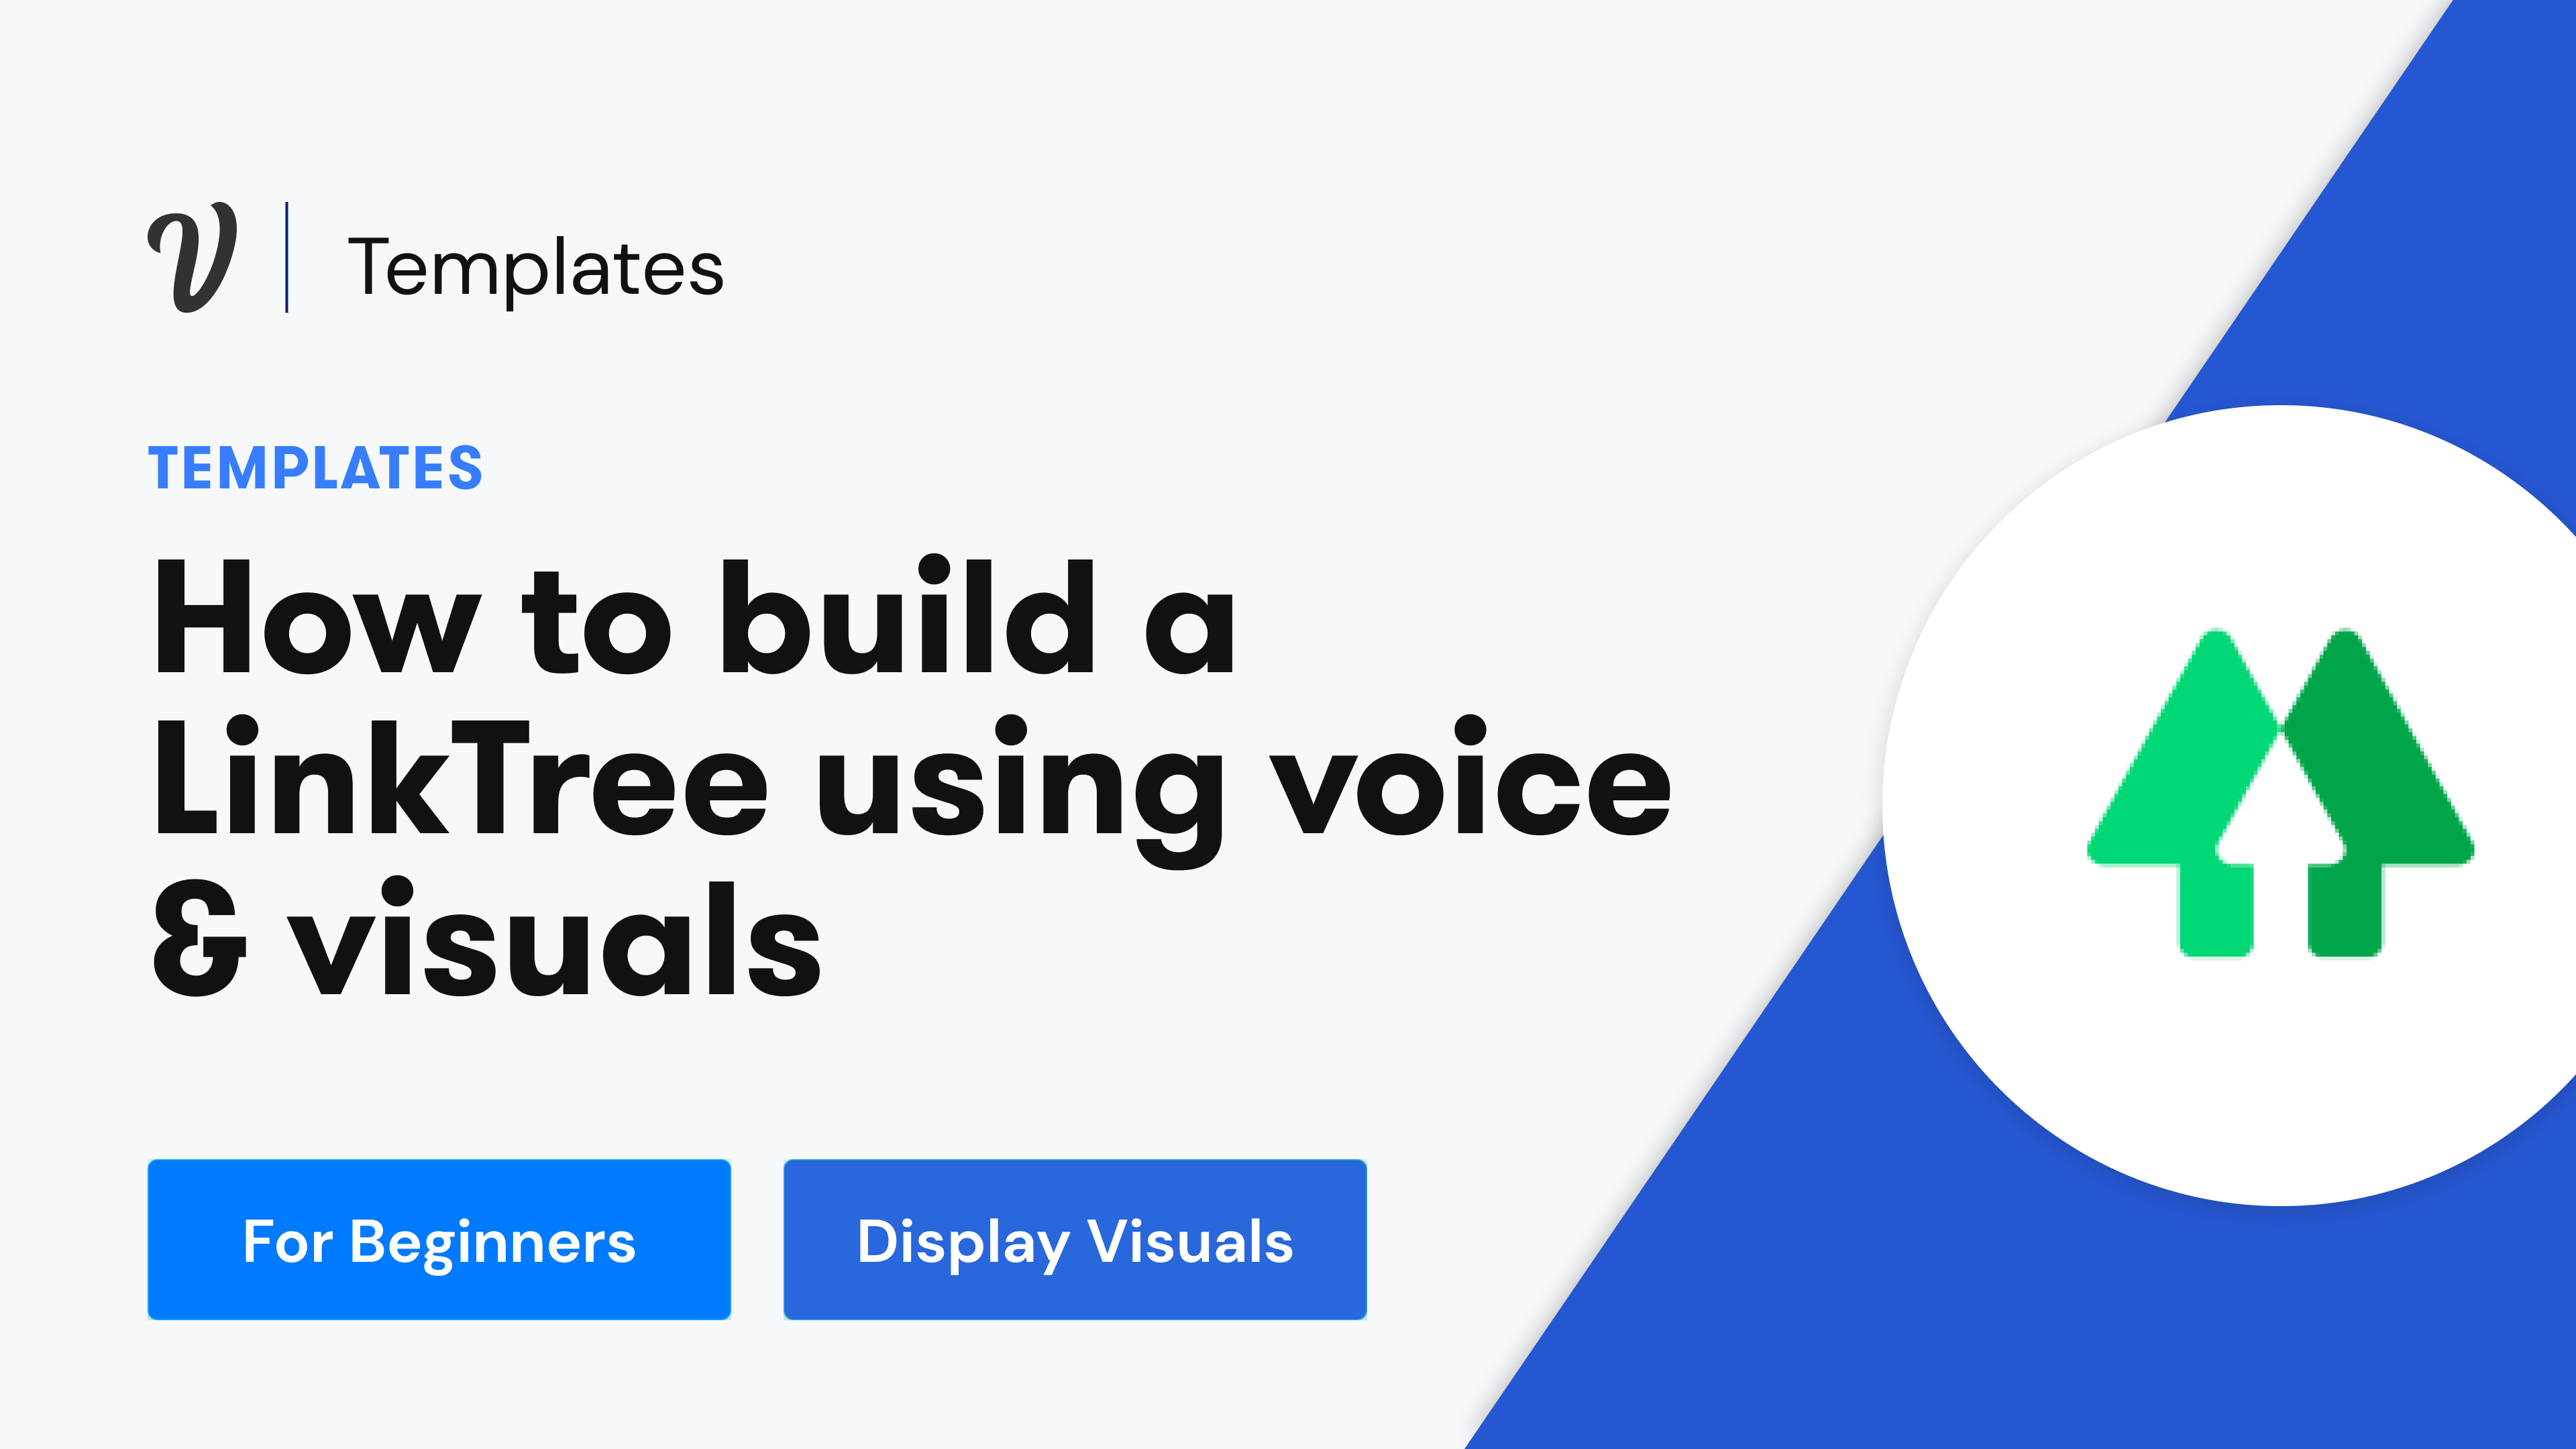 How to build a LinkTree using voice & visuals